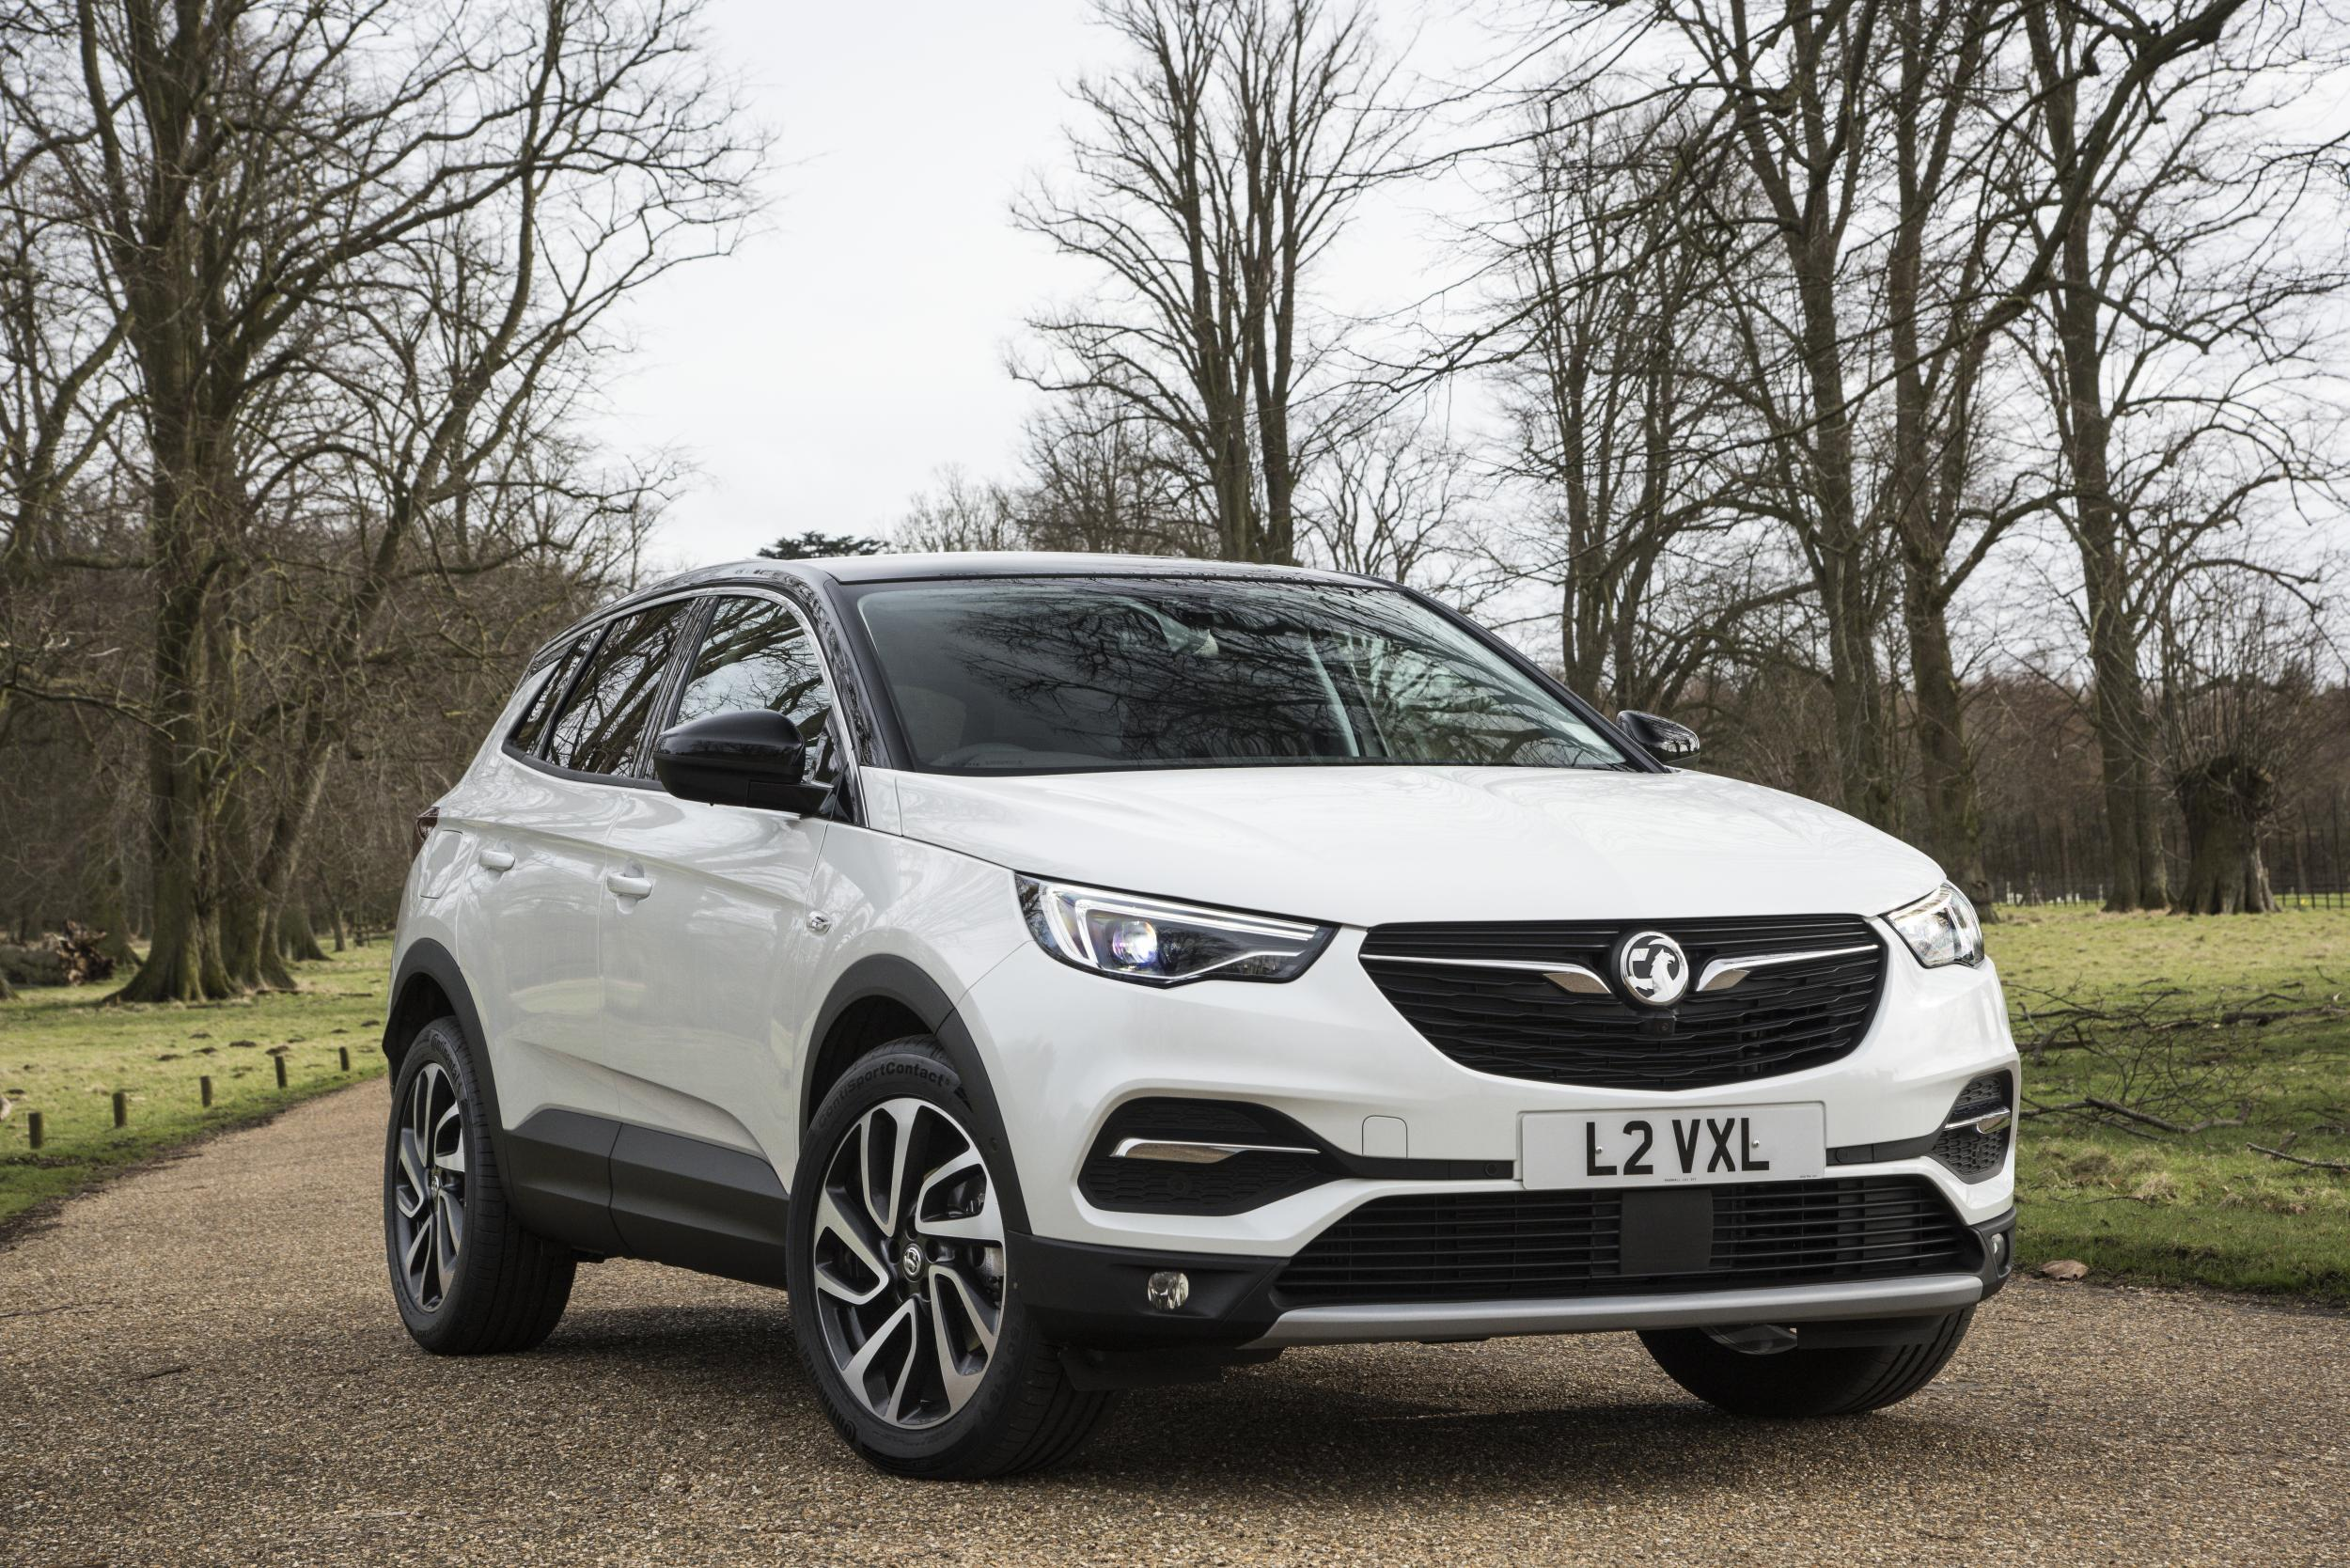 Vauxhall Grandland X Car Review A Remarkably Unremarkable Auto Lighting System Diagram 2017 2018 Best Cars Reviews The Independent